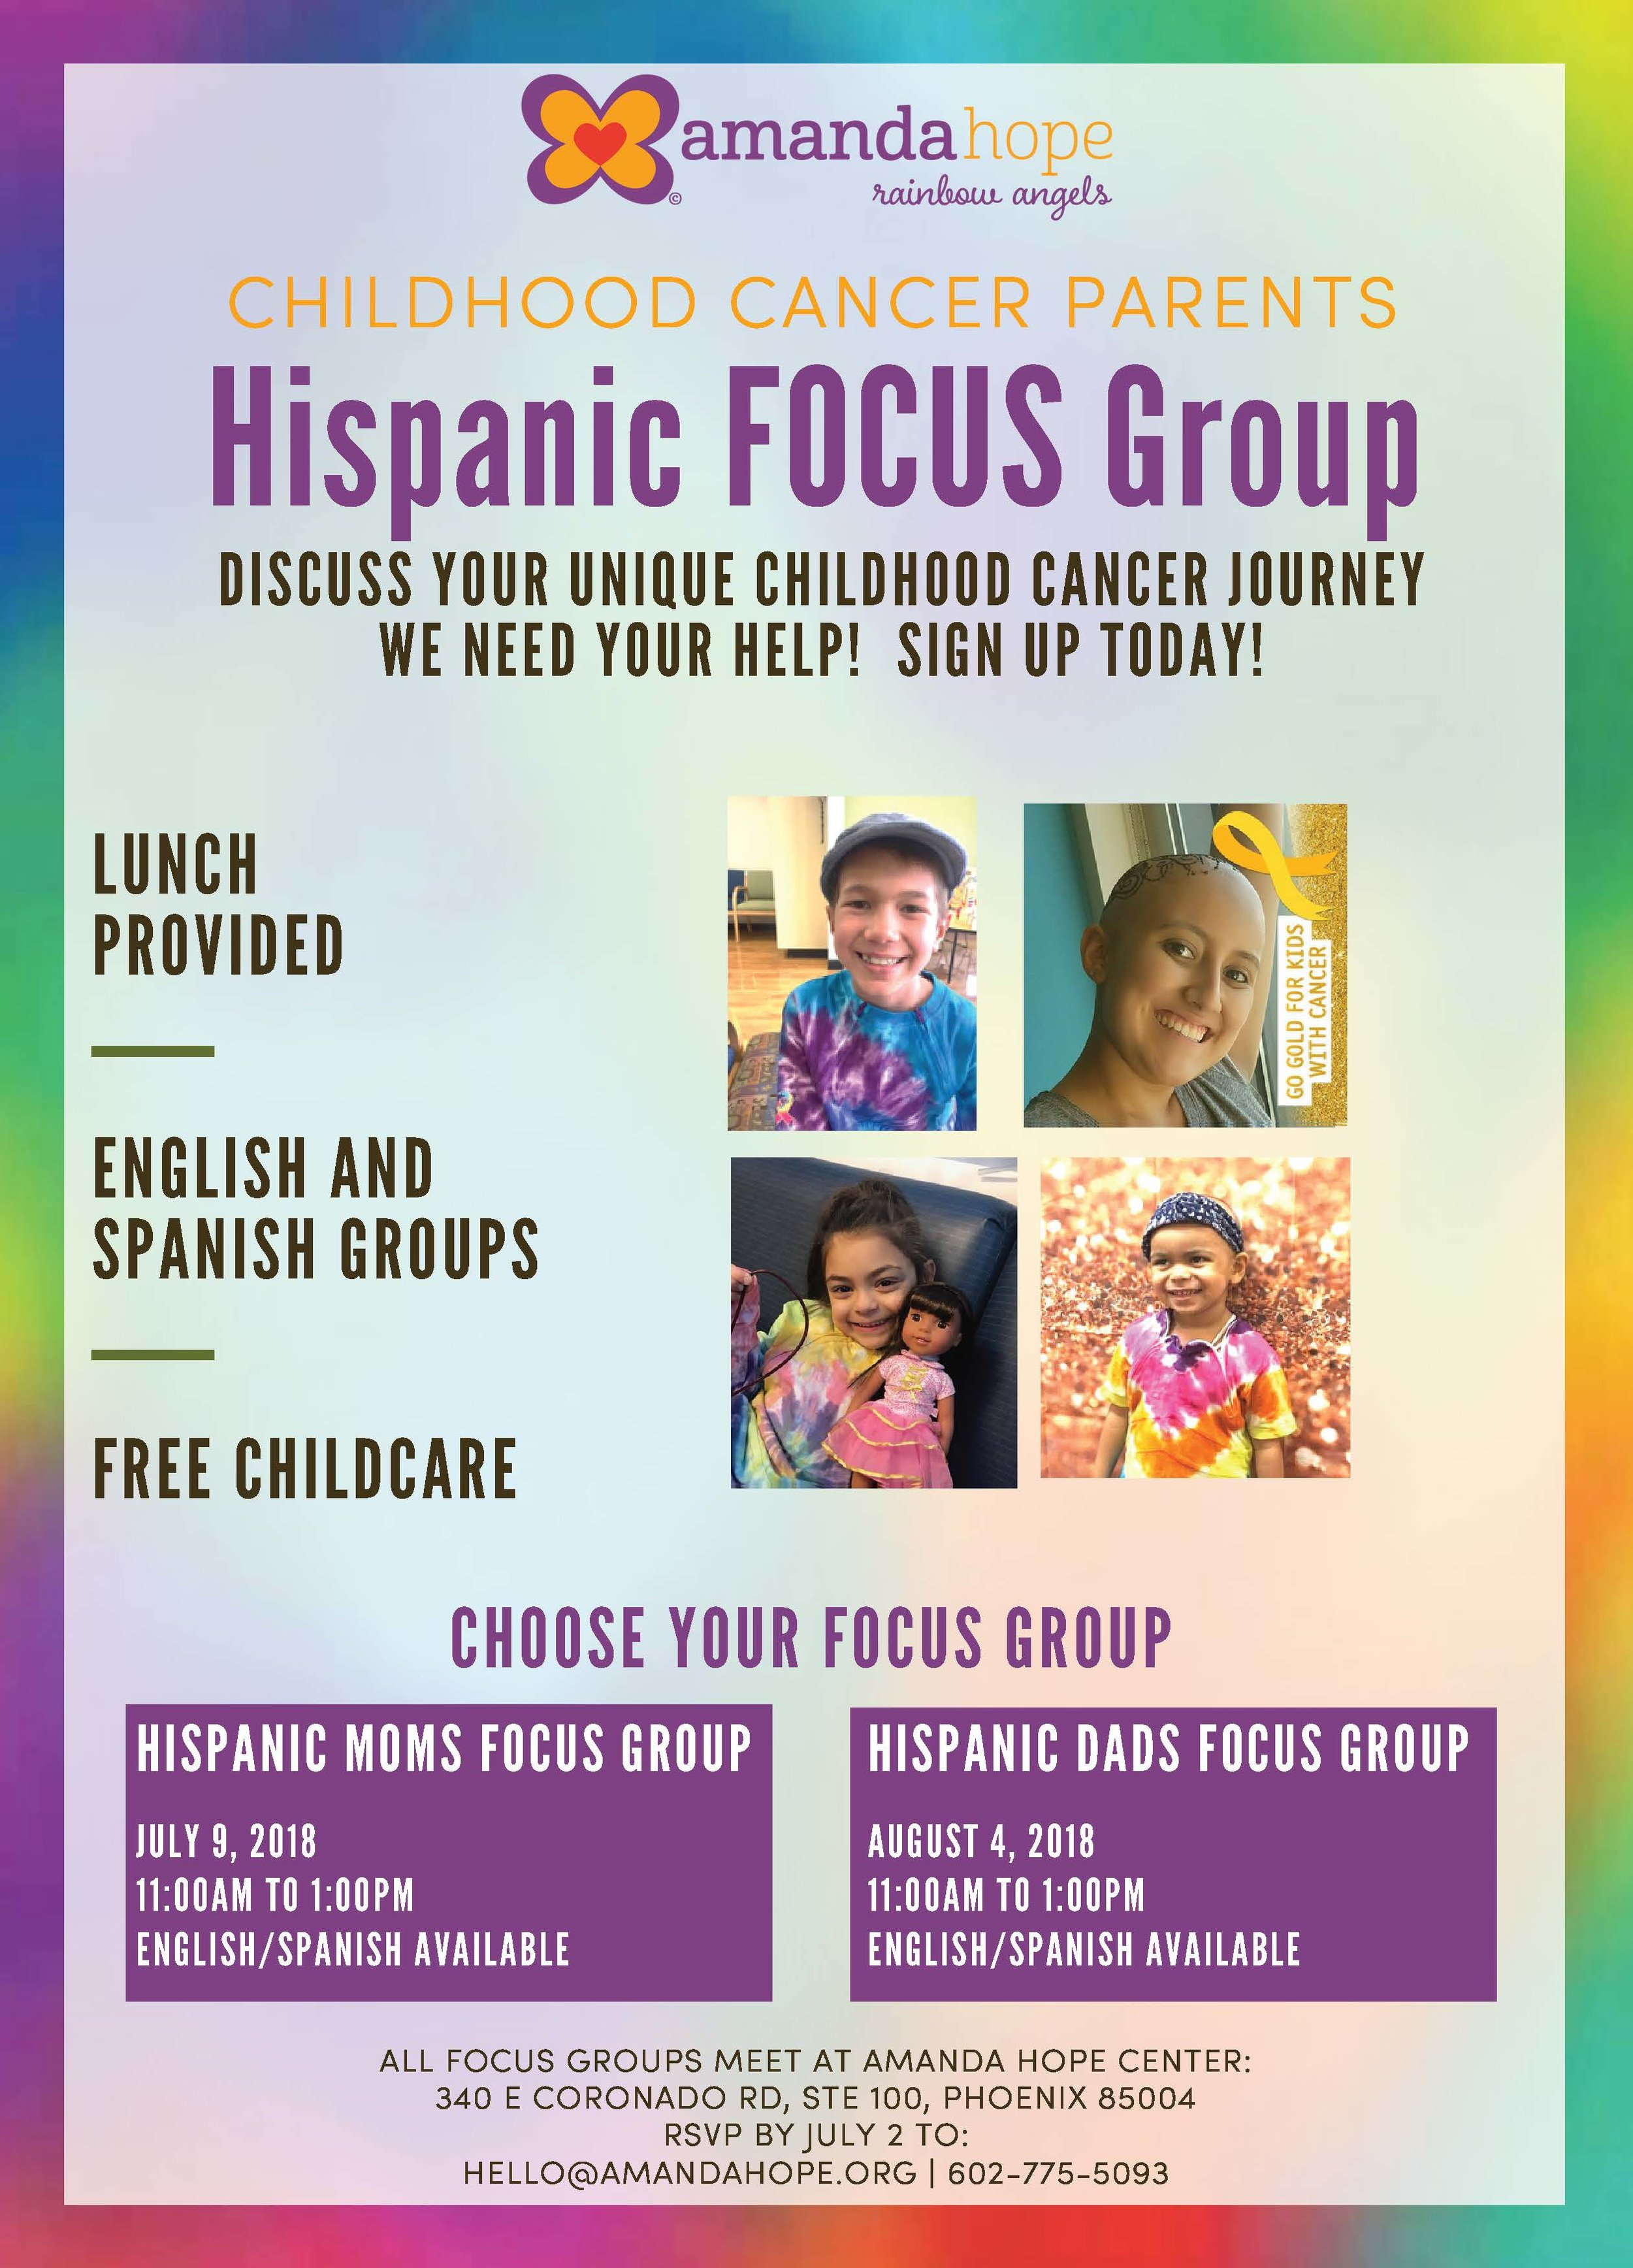 Hispanic Parents FOCUS Group!  We are hosting a focus group to learn more about childhood cancer in the hispanic culture, and we would like to hear your story. We will hold a group session on July 9th for moms and a group on August 4th for dads. Both sessions will be held at the Amanda Hope Center in Phoenix, AZ.  There will be English and Spanish sessions available. Please let us know which group you would like to be a part of: hello@amandahope.org